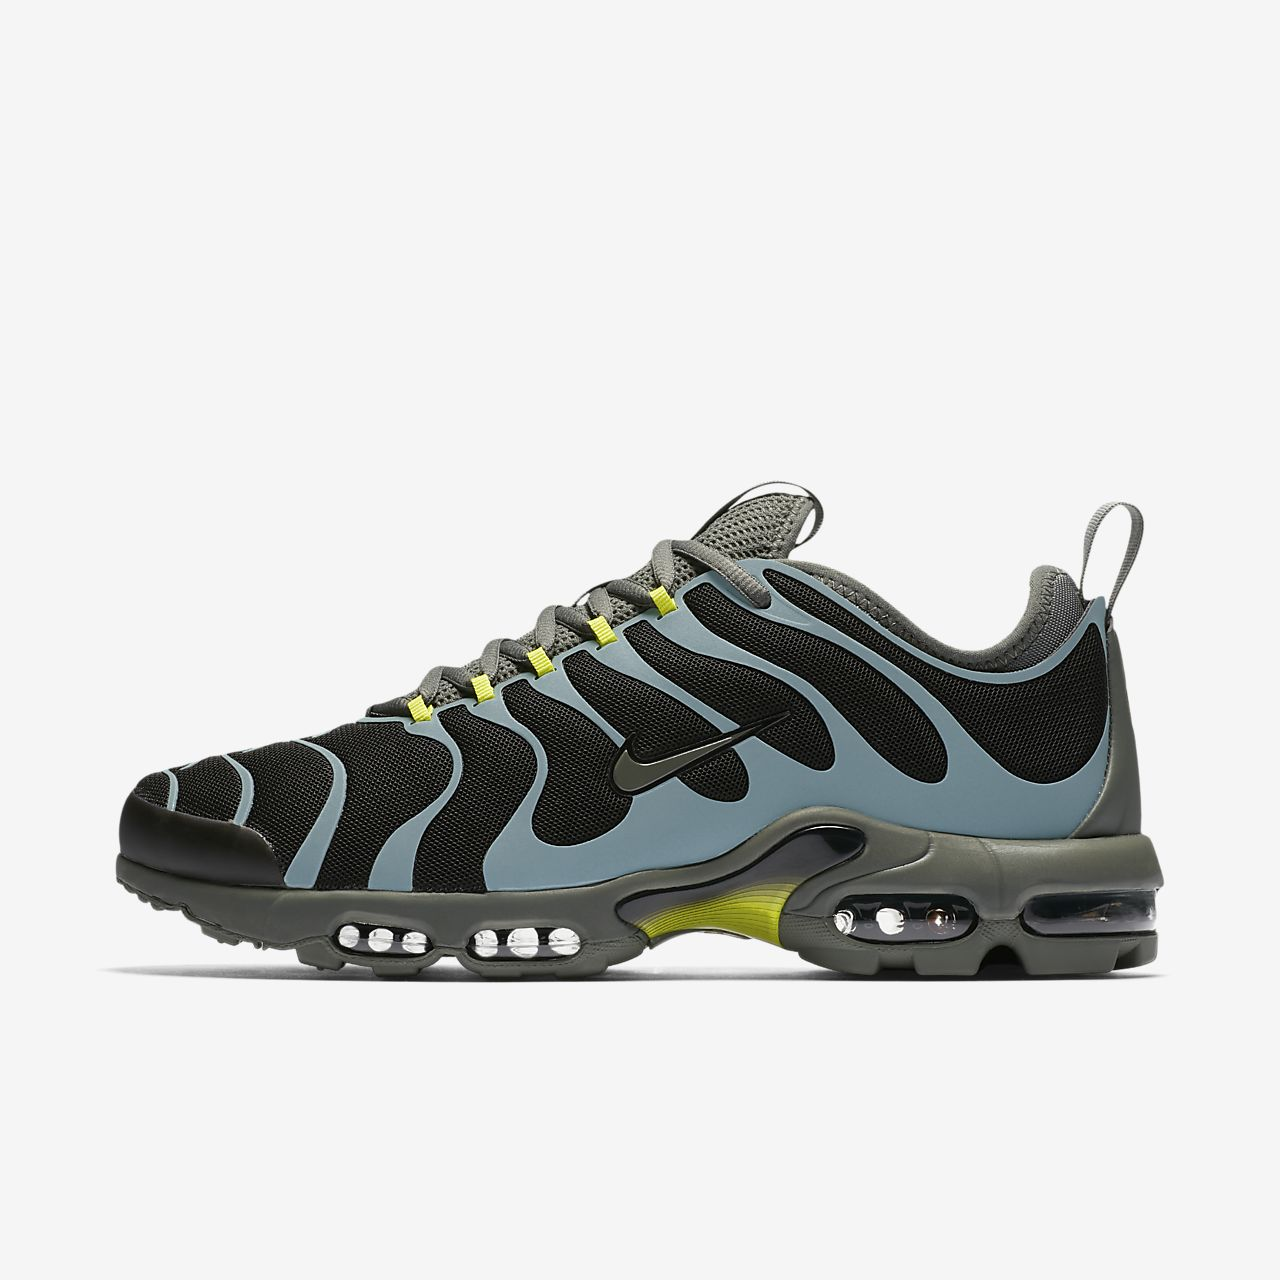 Acquista 2 OFF QUALSIASI nike air max plus tn scarpe CASE E